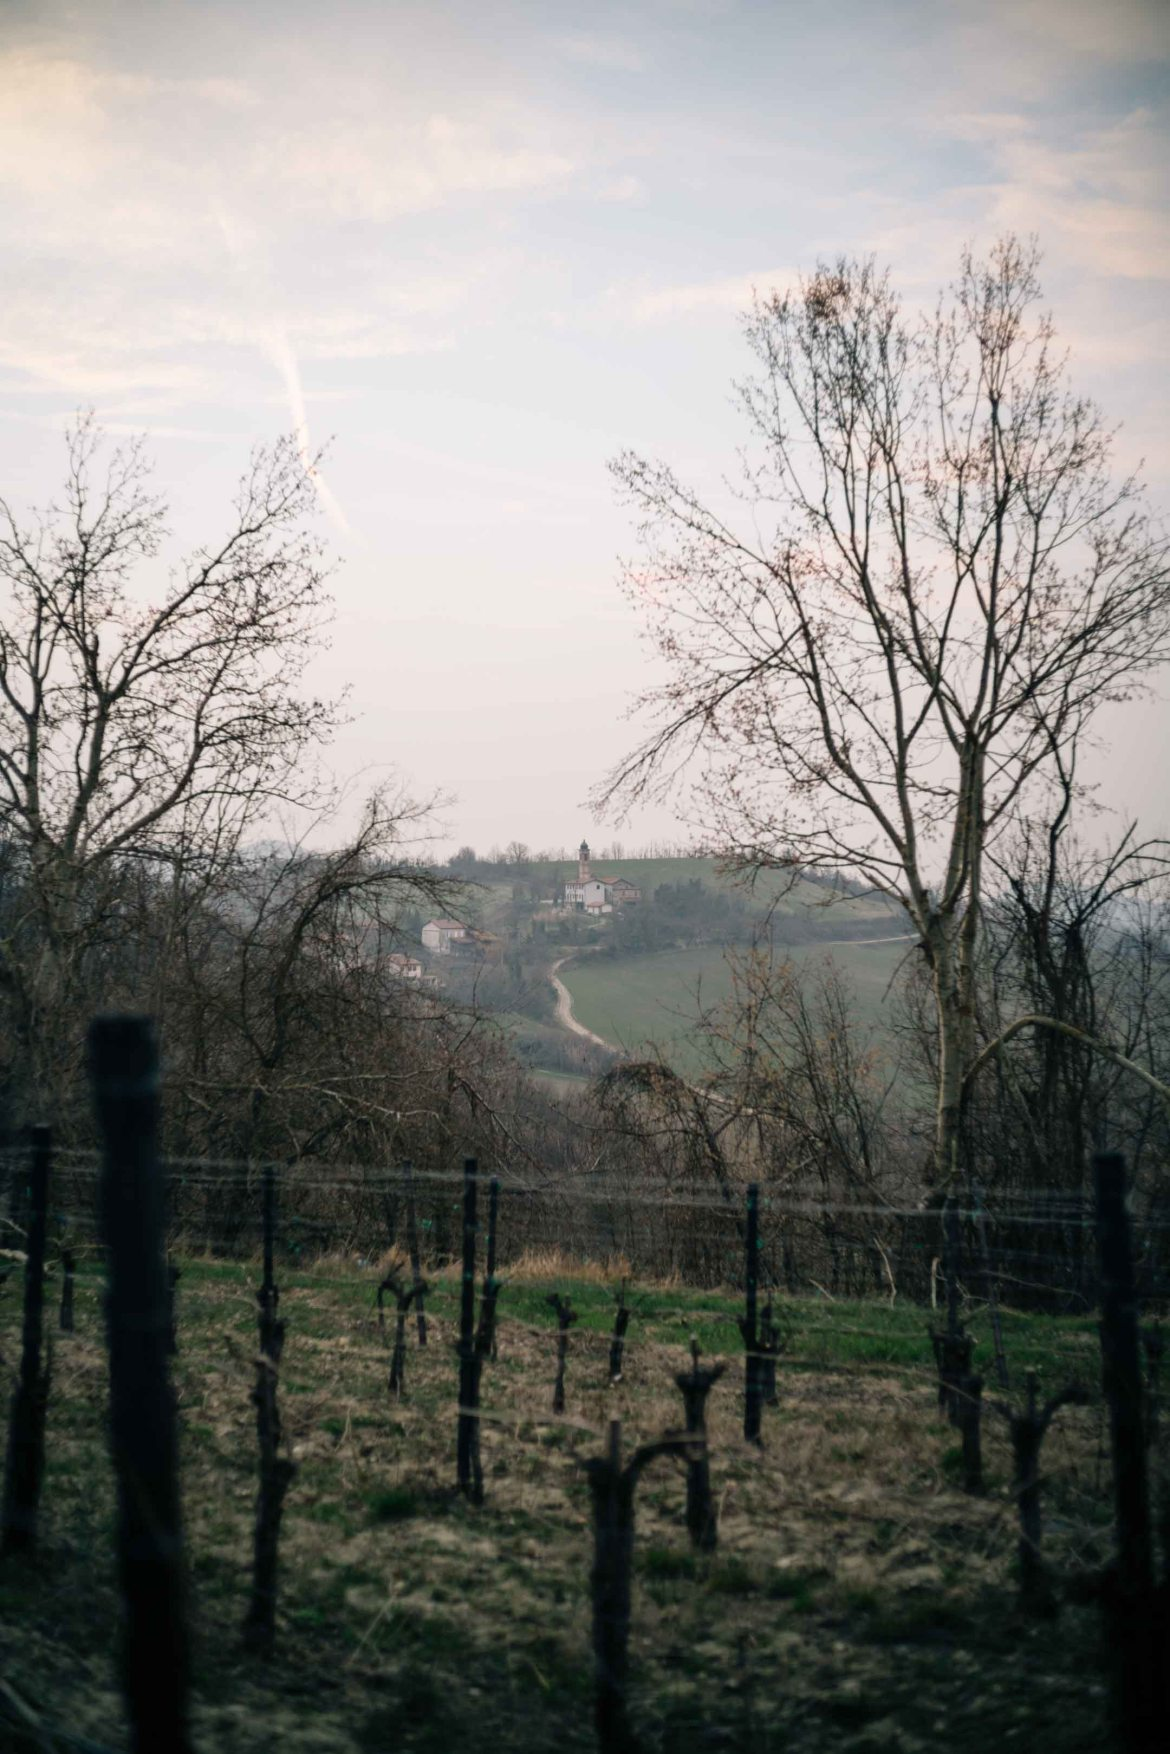 View the vineyards - The Taste Edit, culinary photographers, recommends visiting this magical winery in northern Italy. Castello di Stefanago is near the town of Pavia in Lombardy. Winemaker and owner Giacomo Baruffaldi gives us a tour of the winery where they make Baruffaldi natural wines.